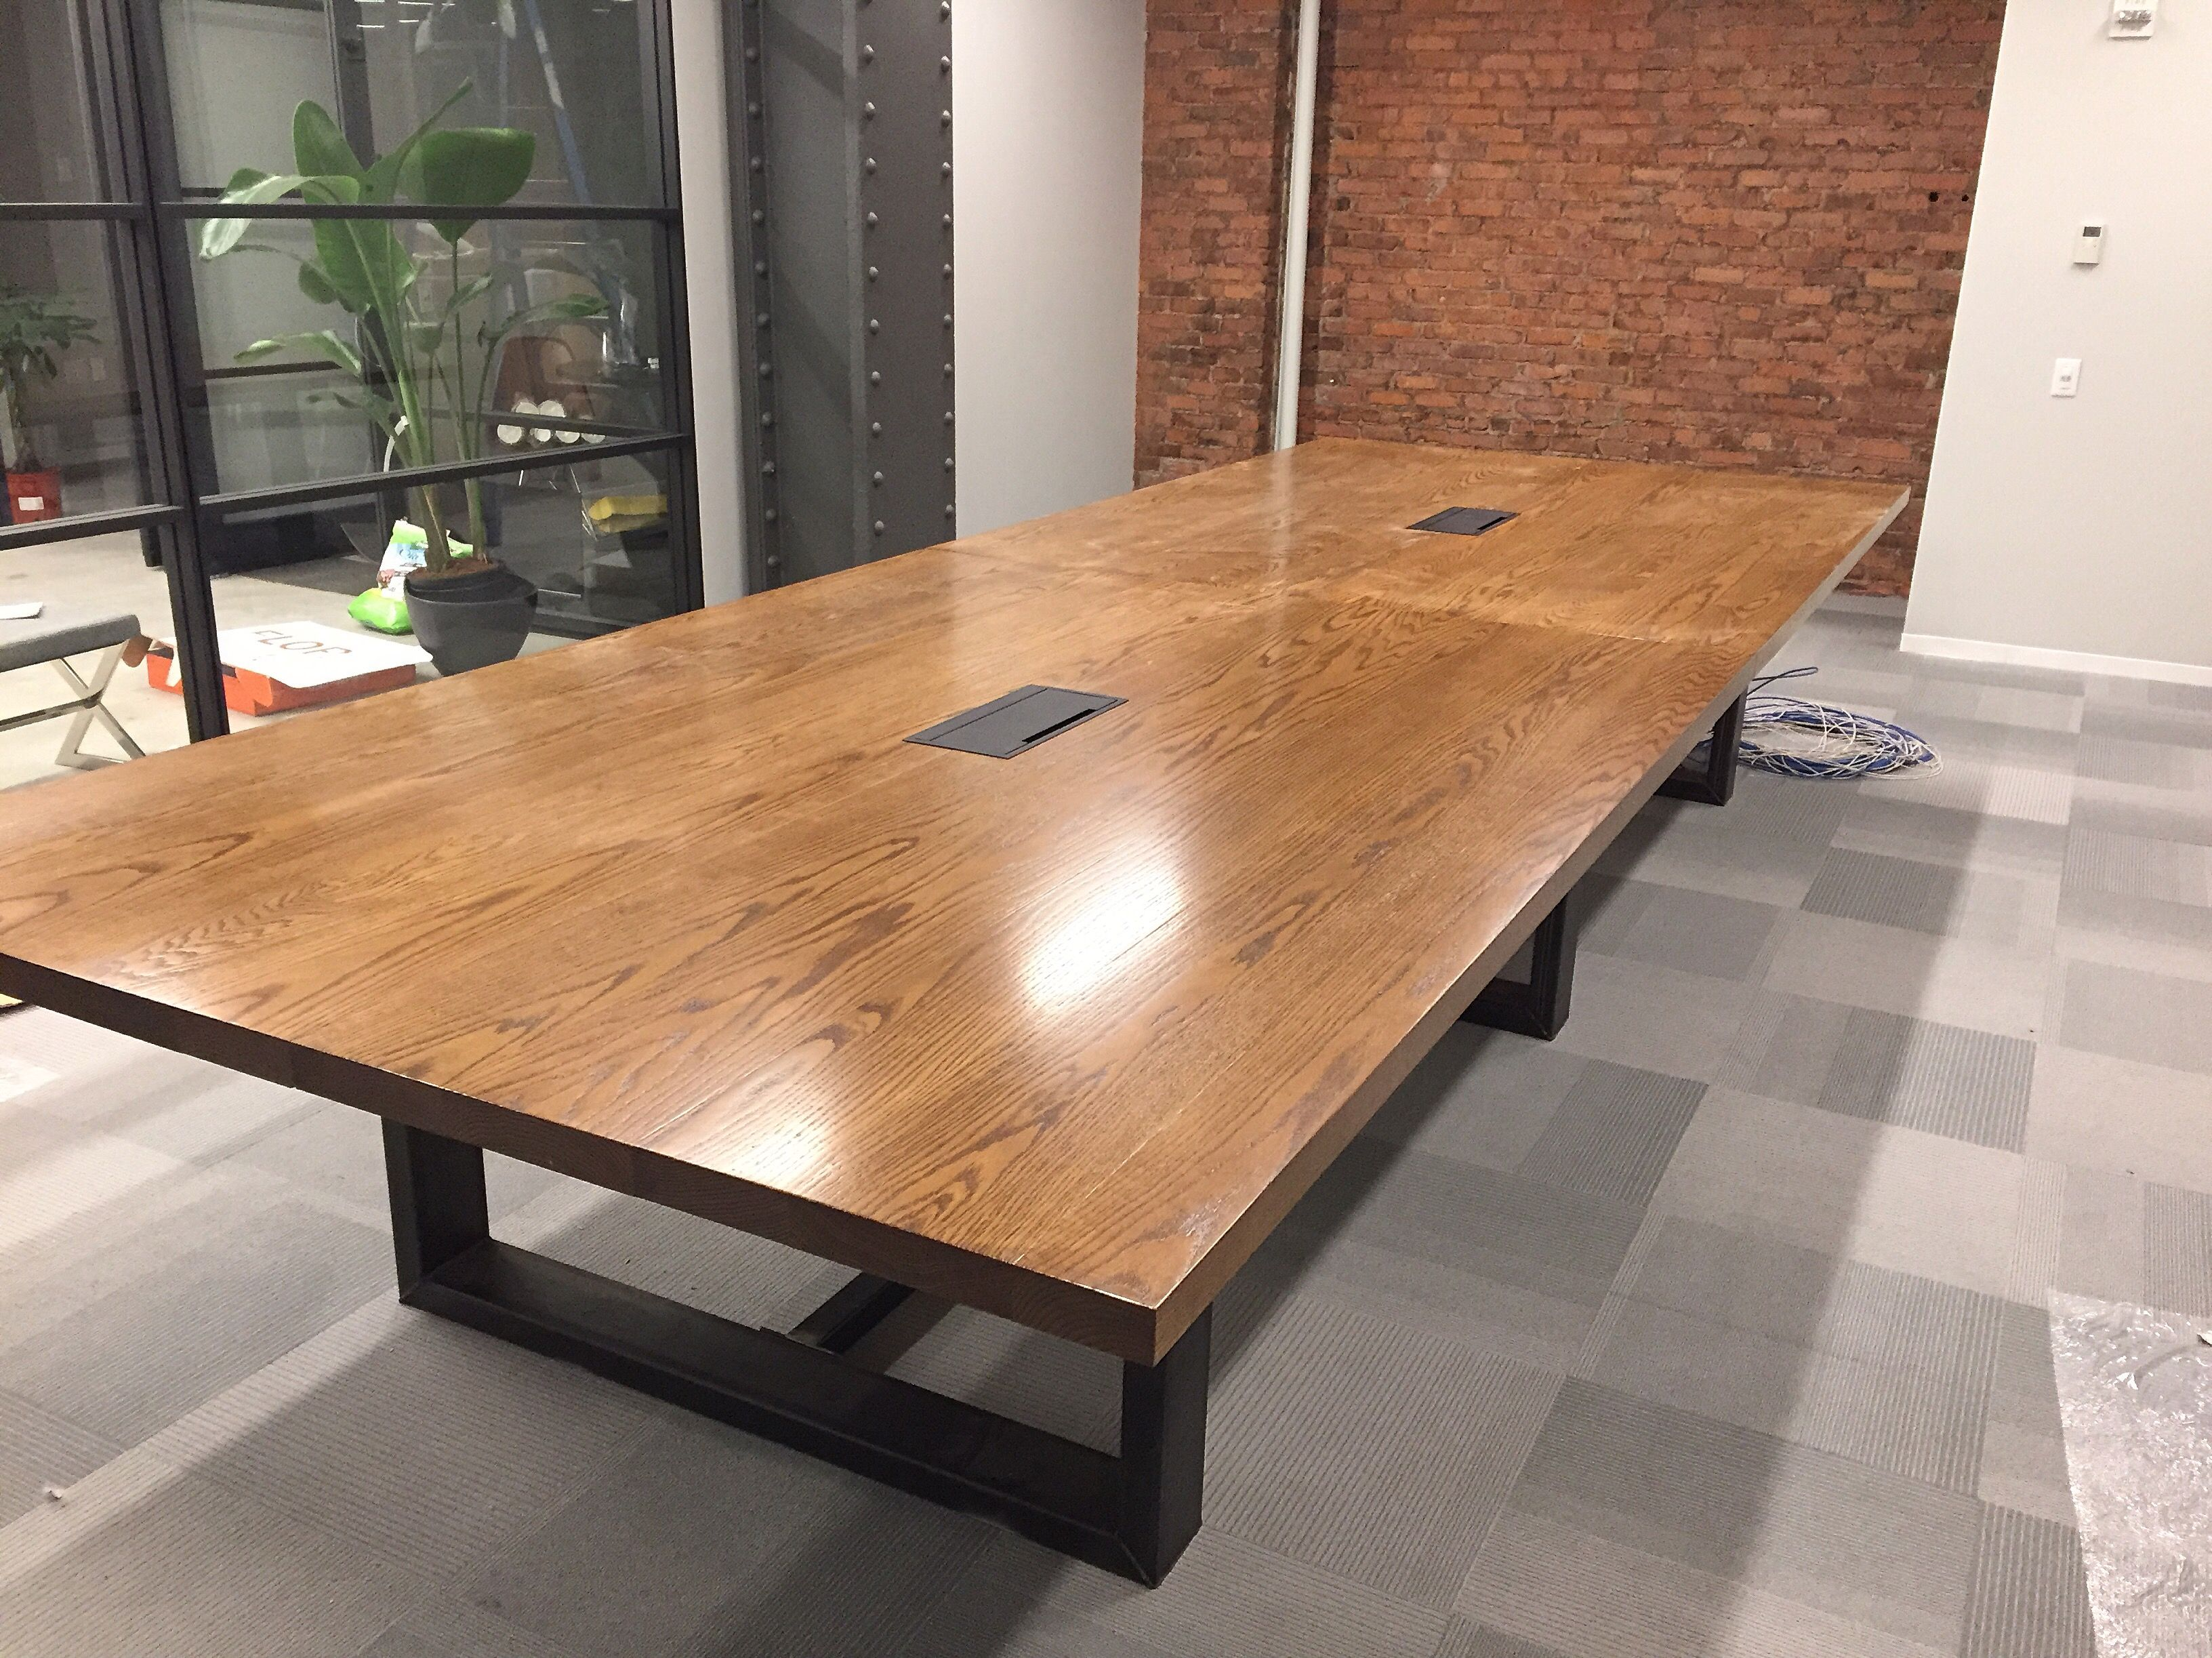 Handmade Custom Conference Table By Greg Pilotti Furniture